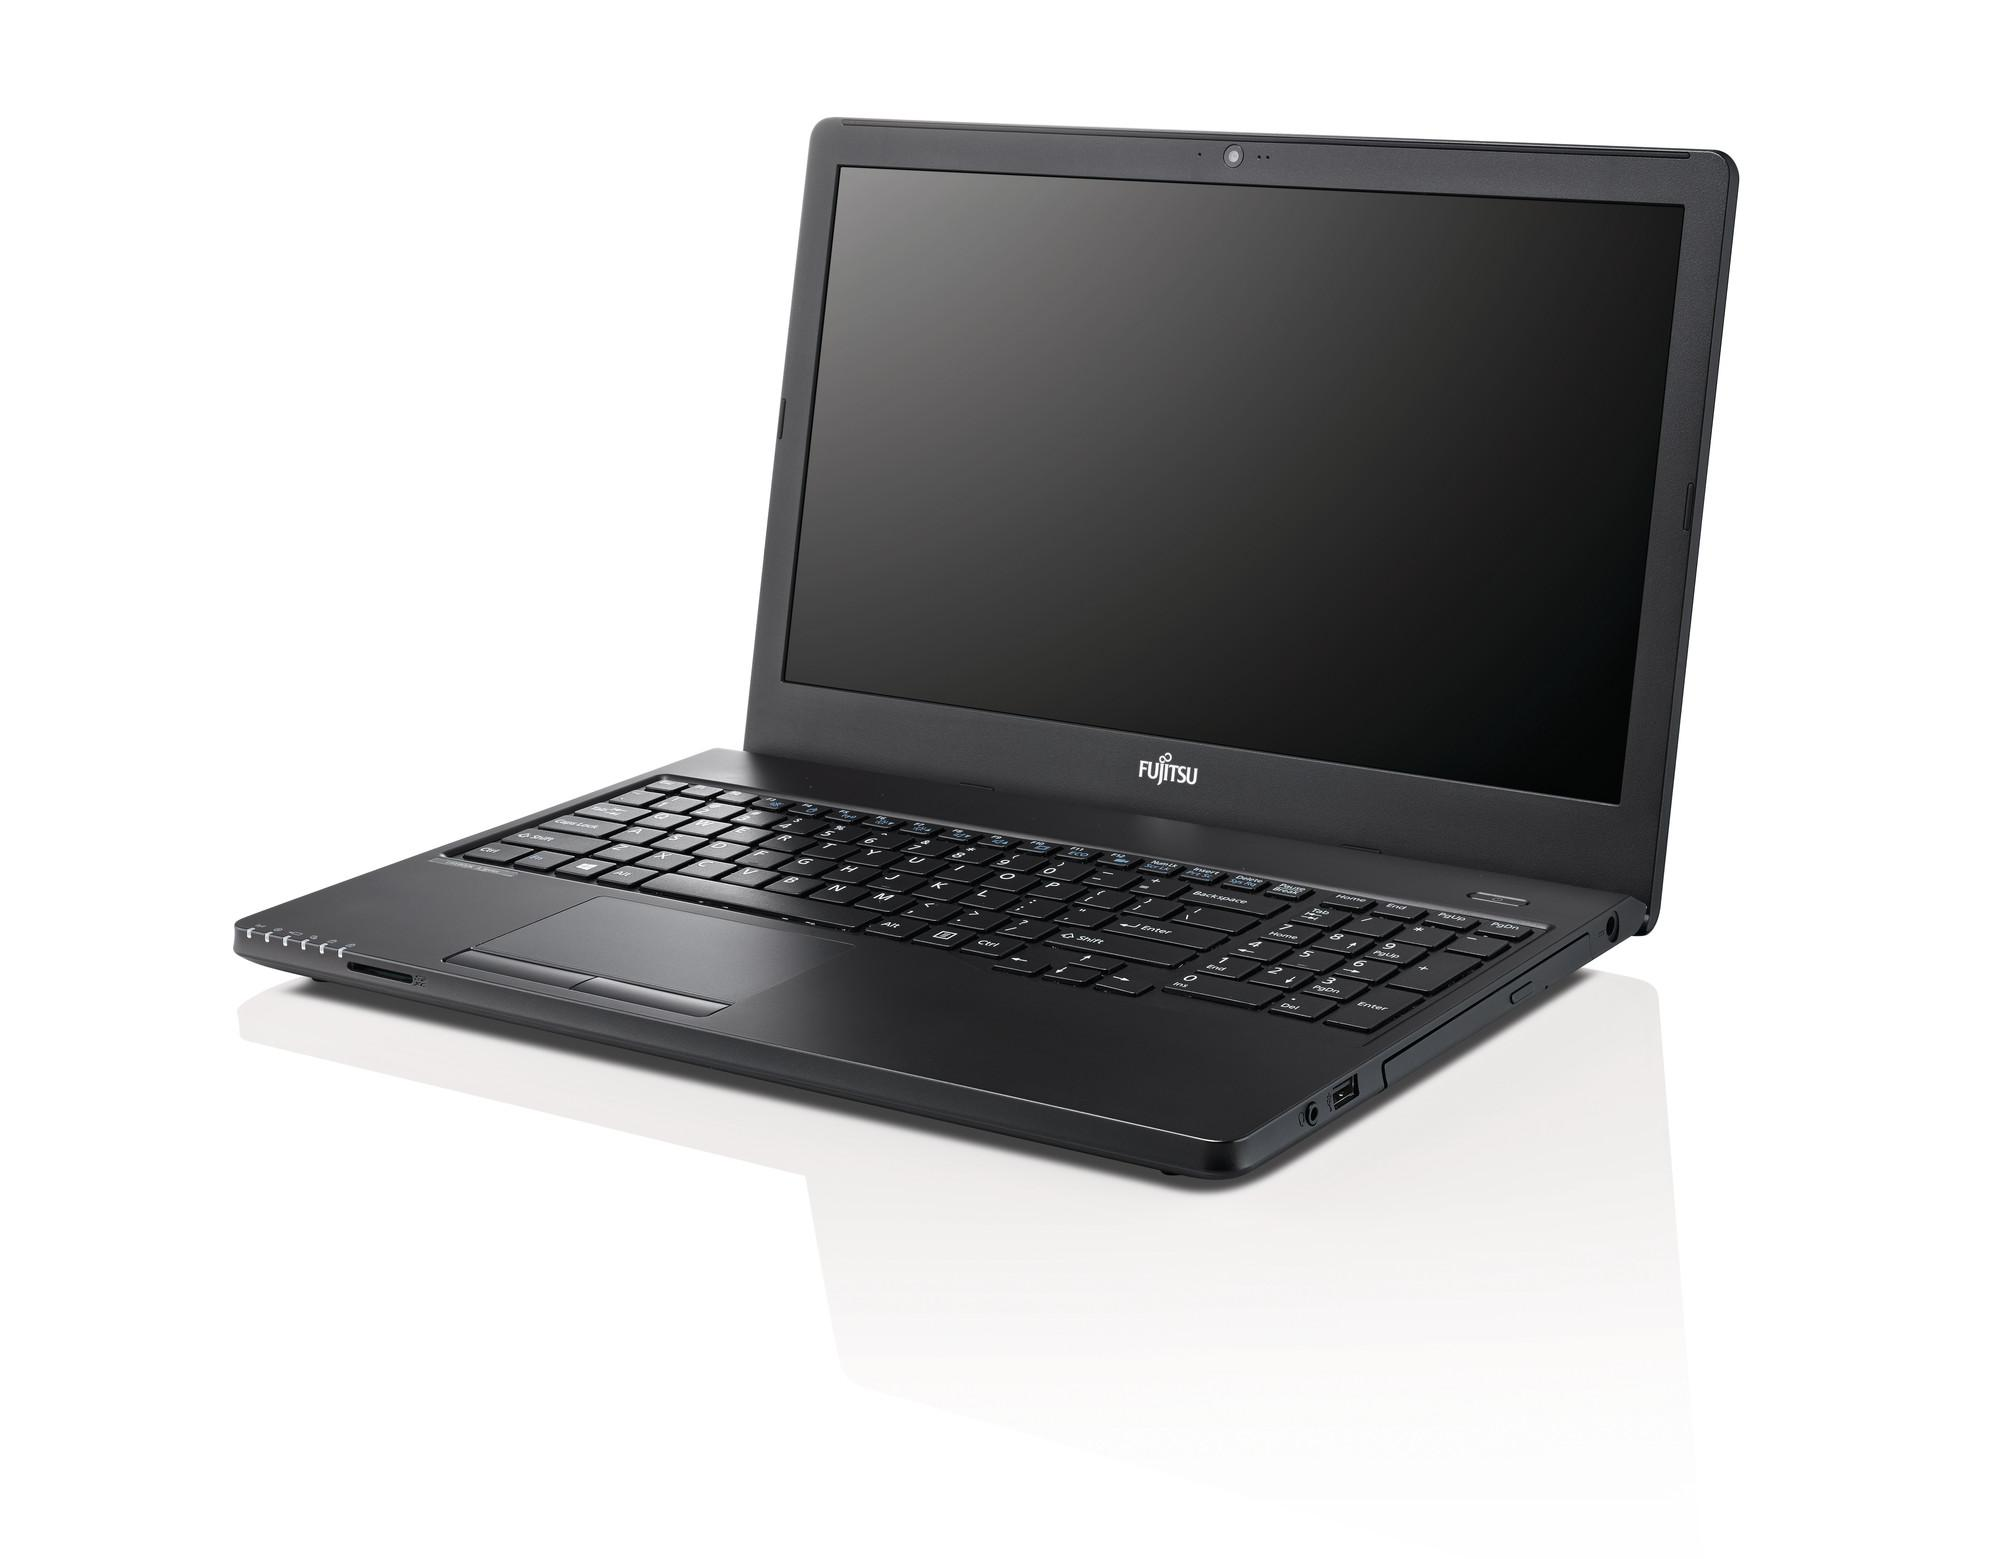 "Лаптоп FUJITSU LIFEBOOK A555, процесор Intel Core i3-5005U (3MB 2GHz), 15.6"", 4GB, 500 GB SATA 5400rpm, без ОС, Intel HD Graphics 5500, Черен"